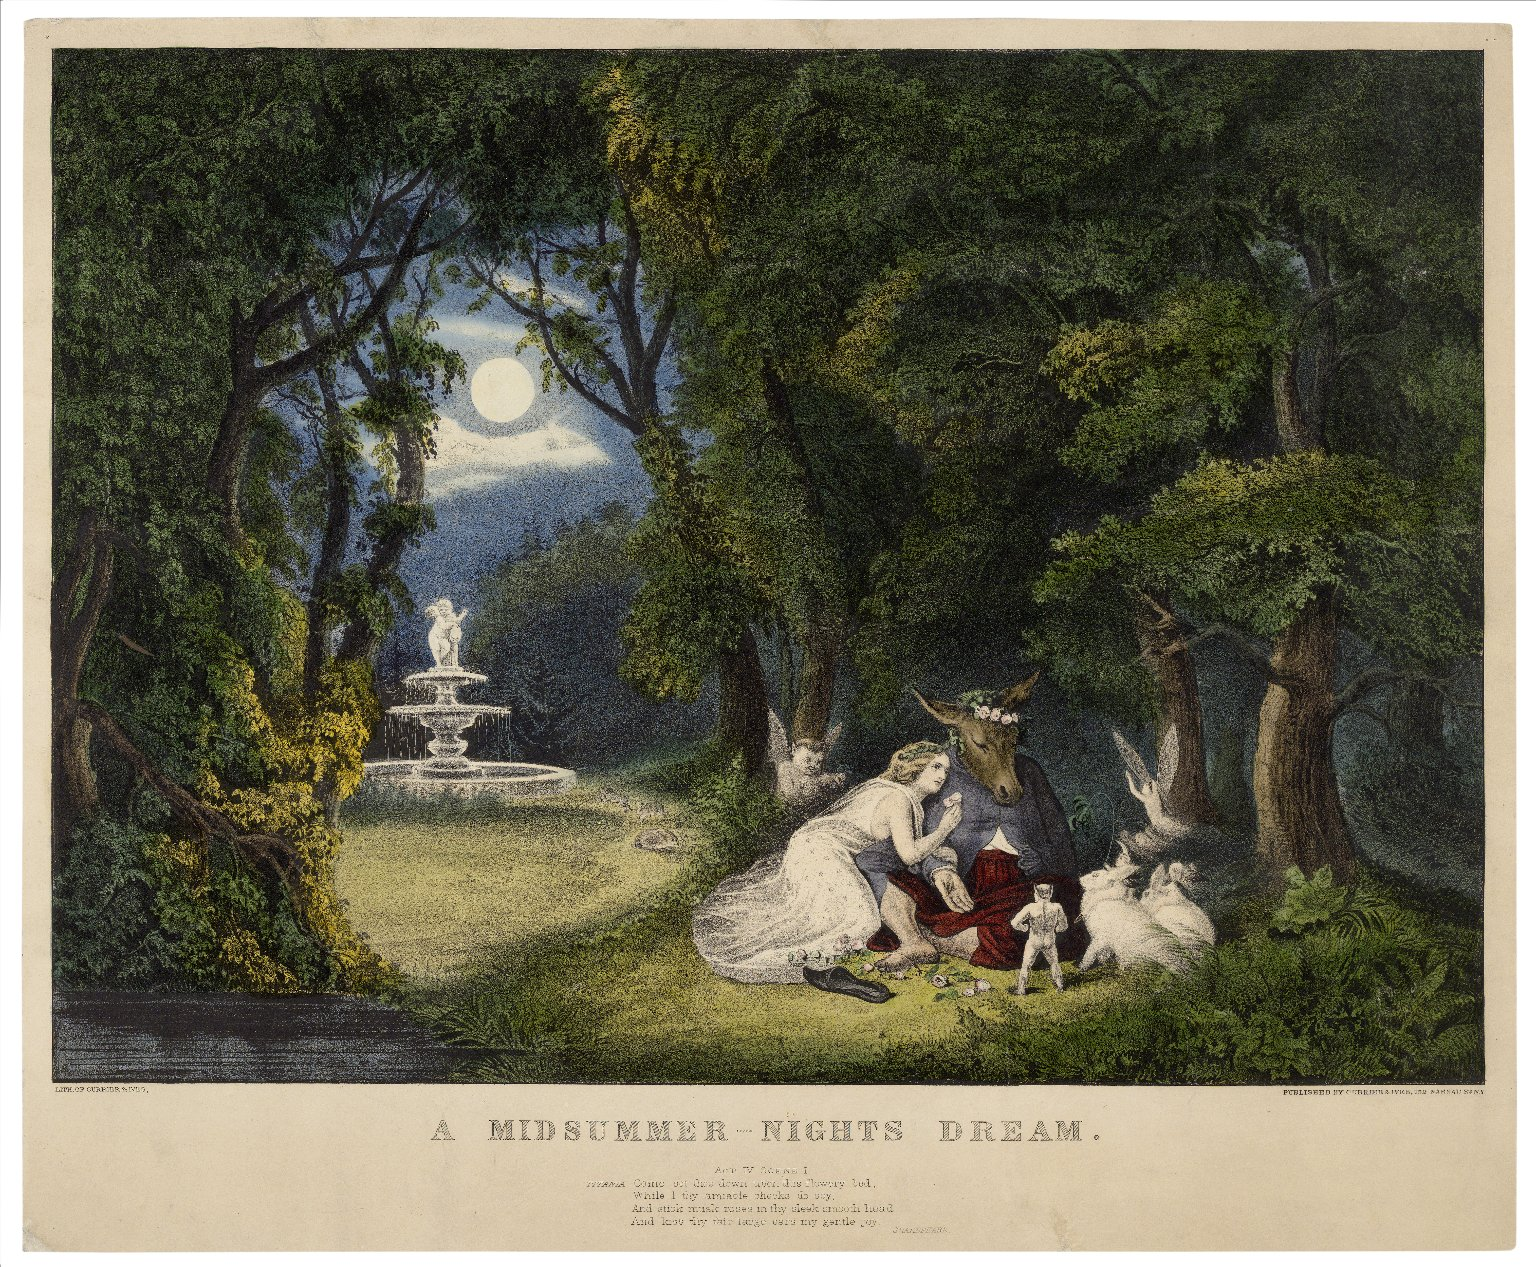 A midsummer-night's dream: act IV, scene 1: Titania: Come set thee down upon this flowery bed [graphic] / lith. of Currier & Ives.